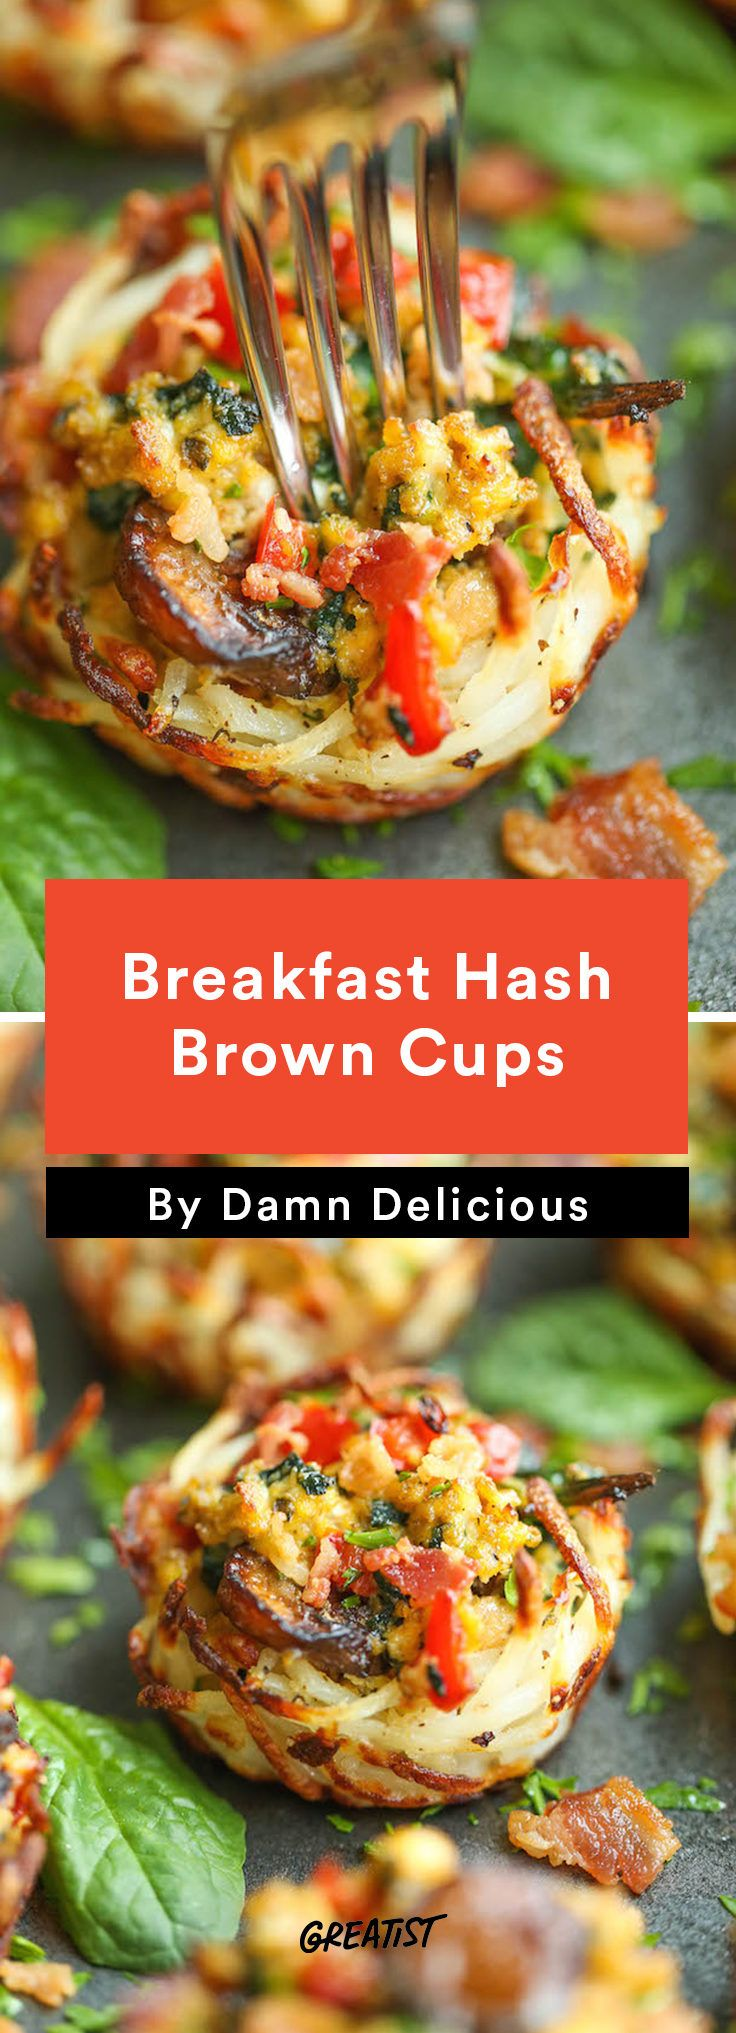 1. Breakfast Hash Brown Cups #healthy #breakfast #recipes http://greatist.com/eat/healthy-breakfast-cup-recipes-to-fuel-your-mornings